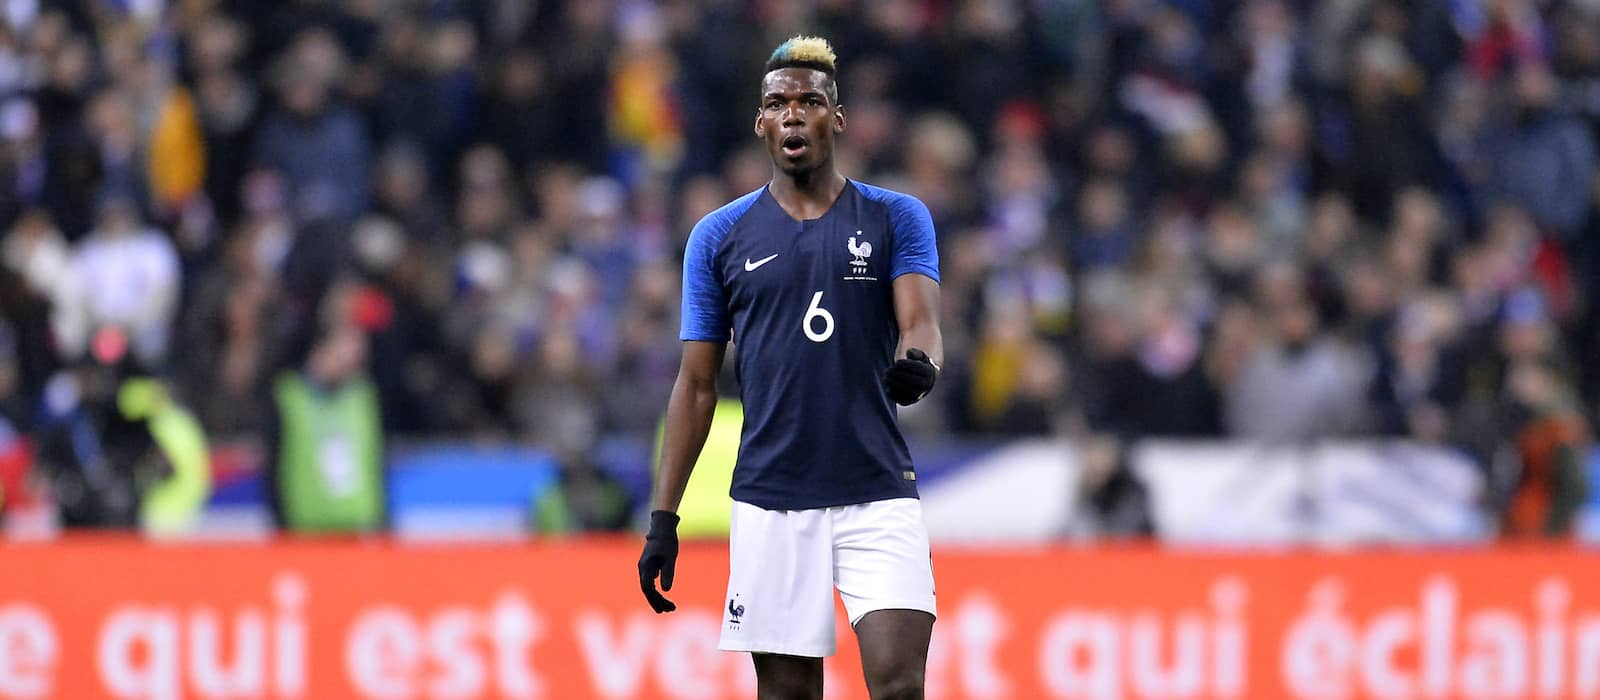 Video: Paul Pogba scores sensational goal in France training amid row over Barcelona links